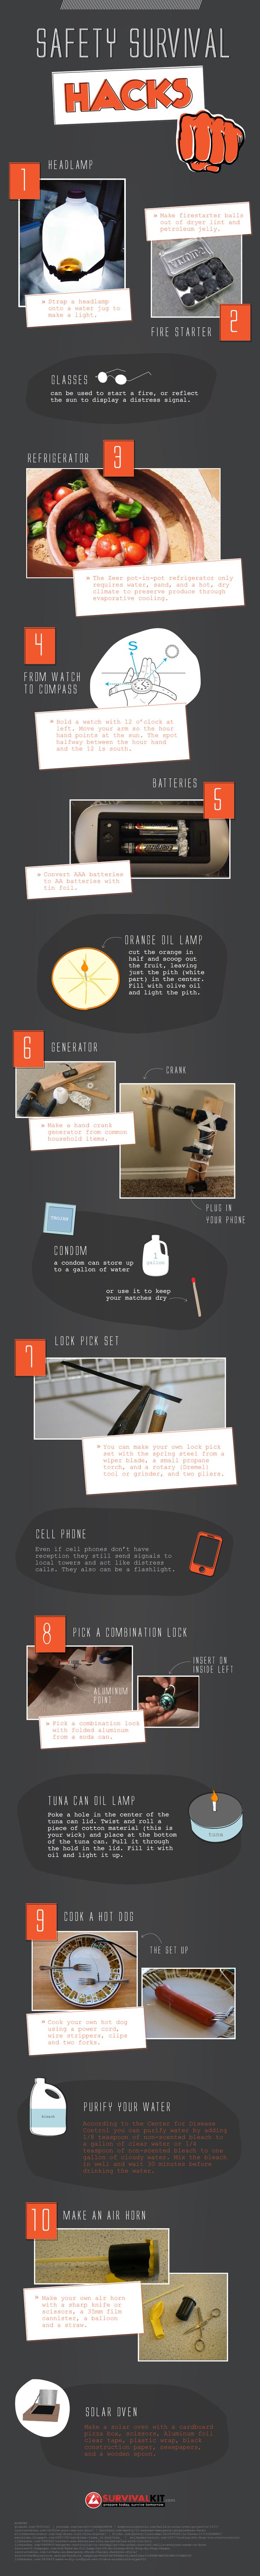 Survival hacks infographic